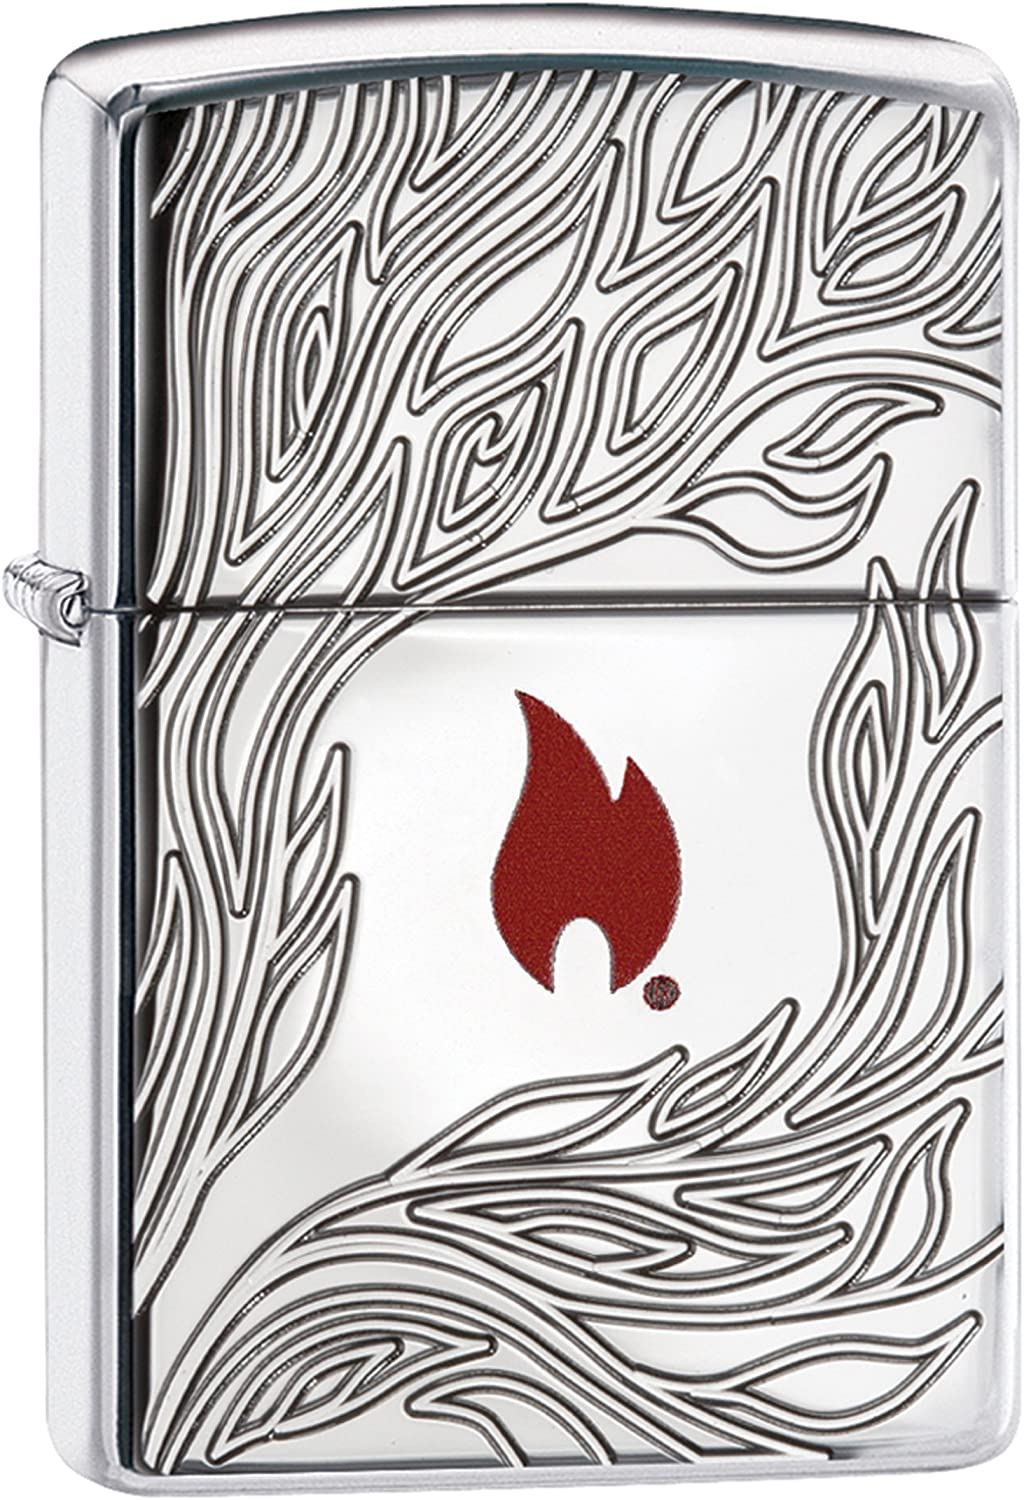 Zippo Flame Design-Armor Case High Polished-Deep Carve Carve Carve with rot Logo Collection 2018 Sturmfeuerzeug, Chrom, Silber 6 x 4 x 2 cm B075S5F7LR 3a8544